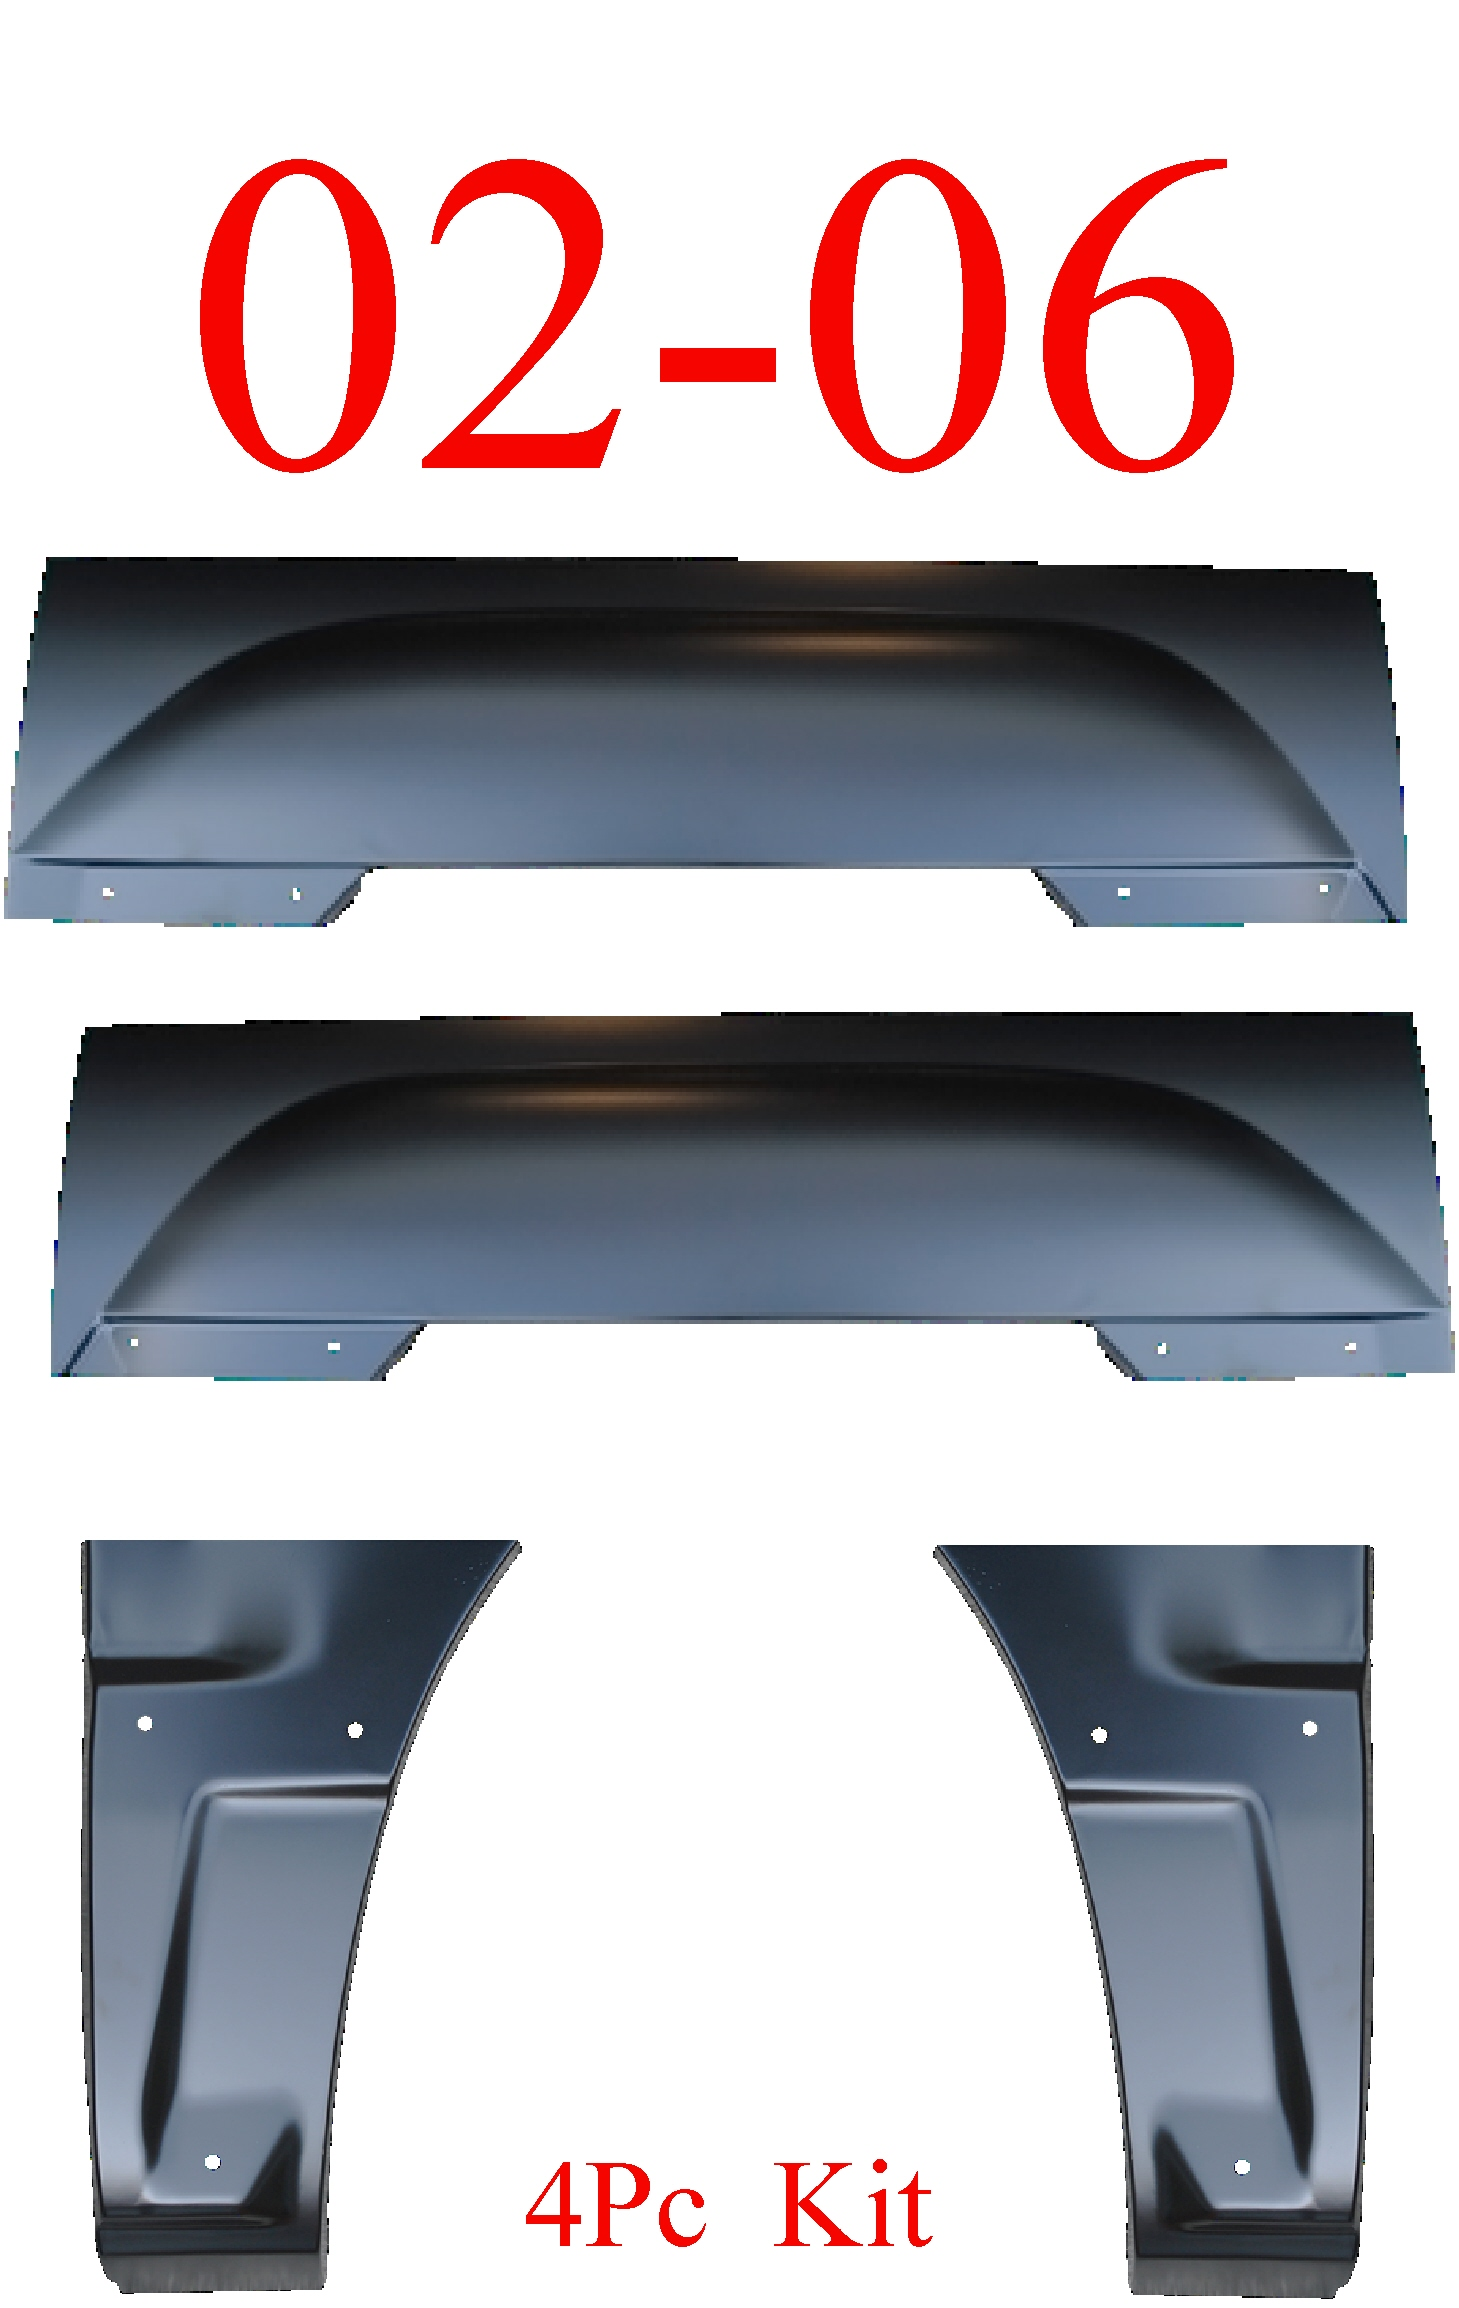 02-06 Chevy Avalanche 4Pc Arch & Dog Leg Kit